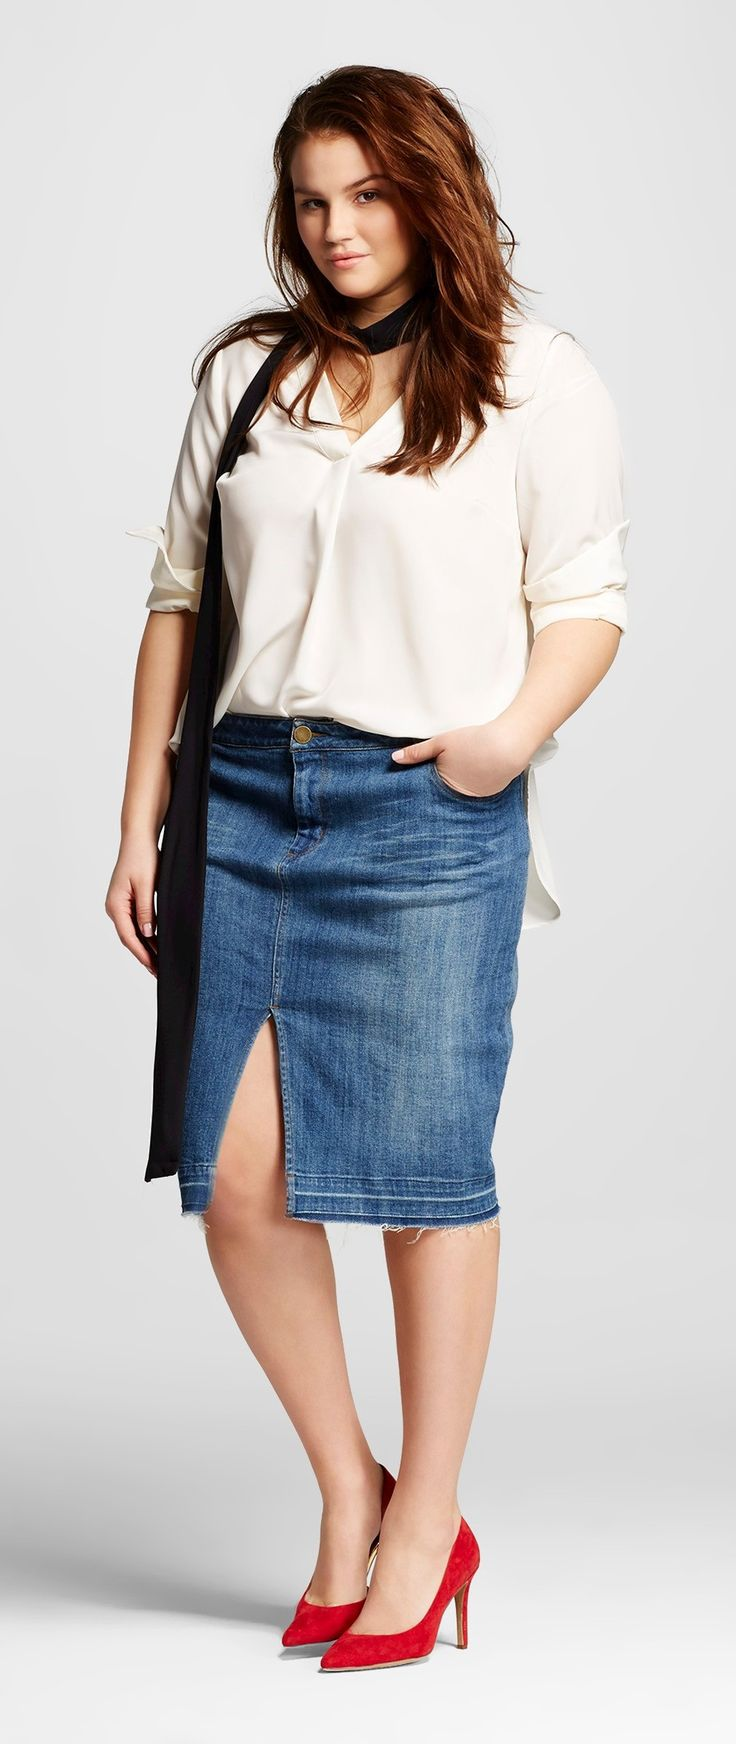 10  images about denim skirt on Pinterest   Jcrew, Skirts and ...